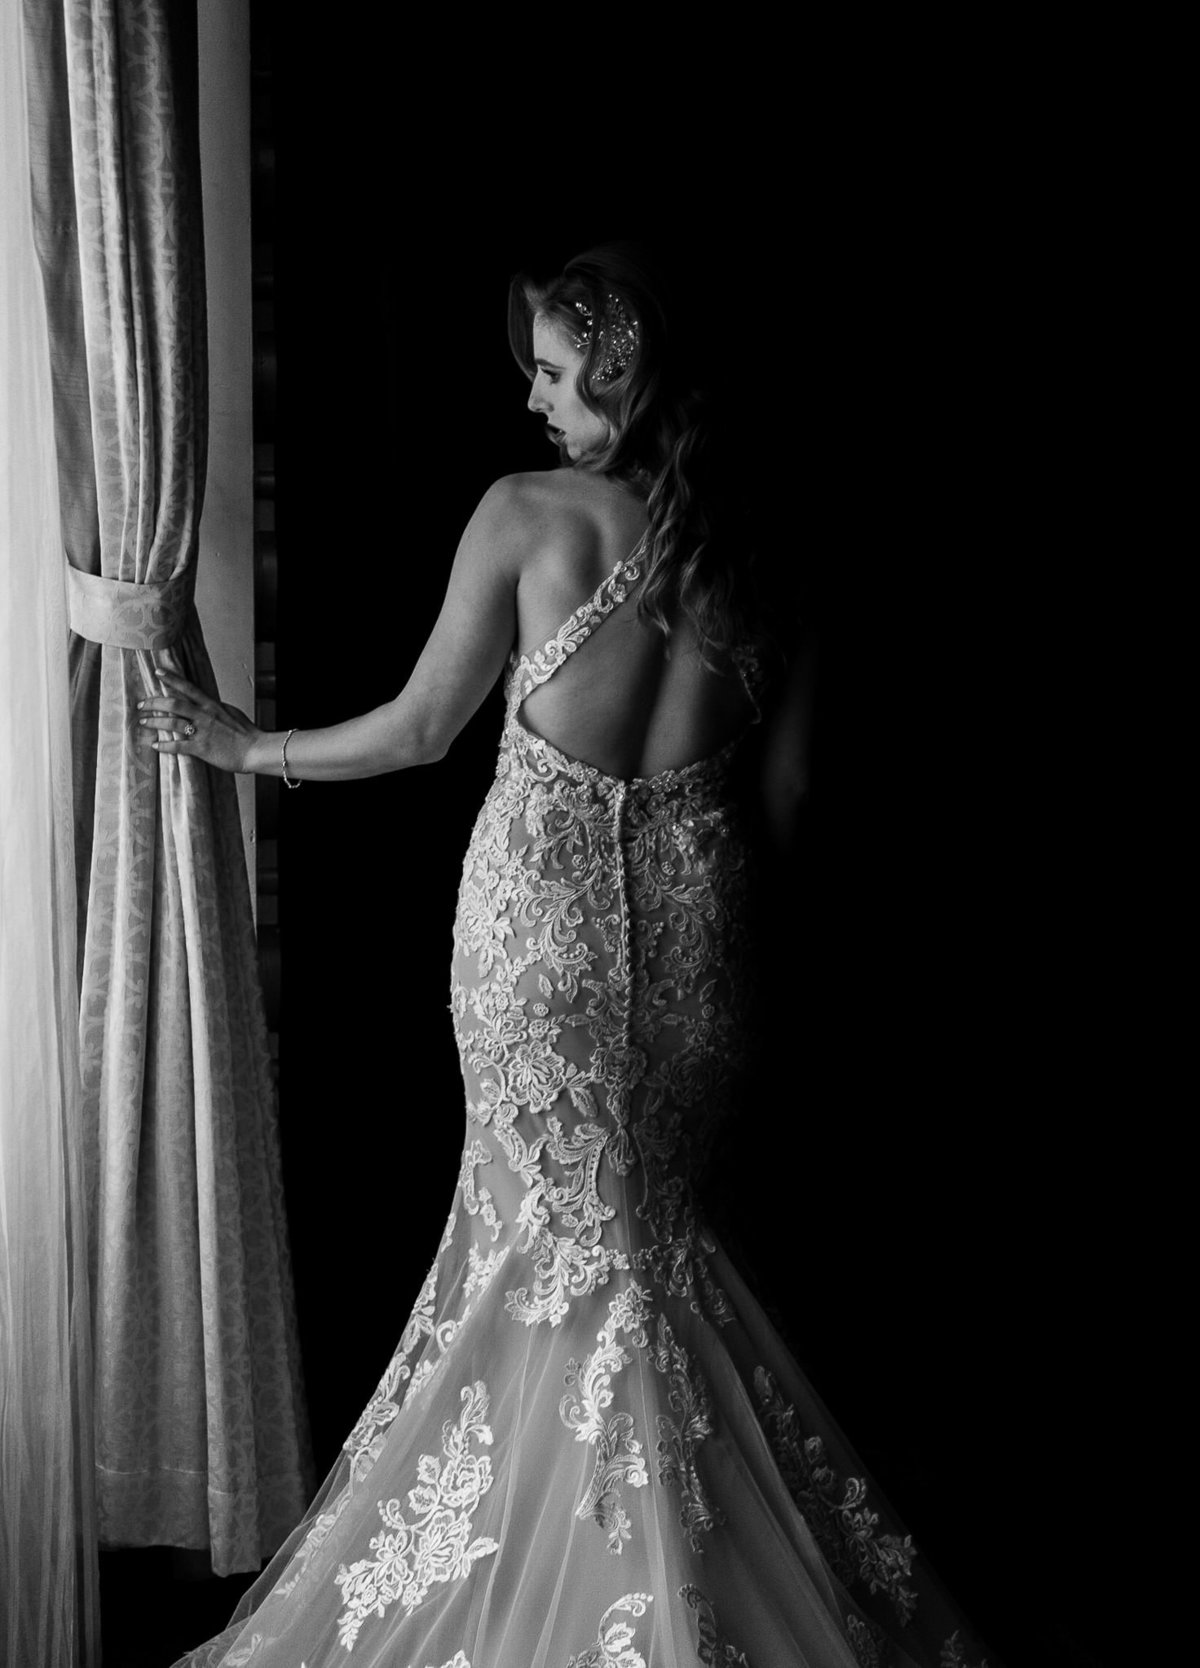 A bride featuring her wedding dress by a window.